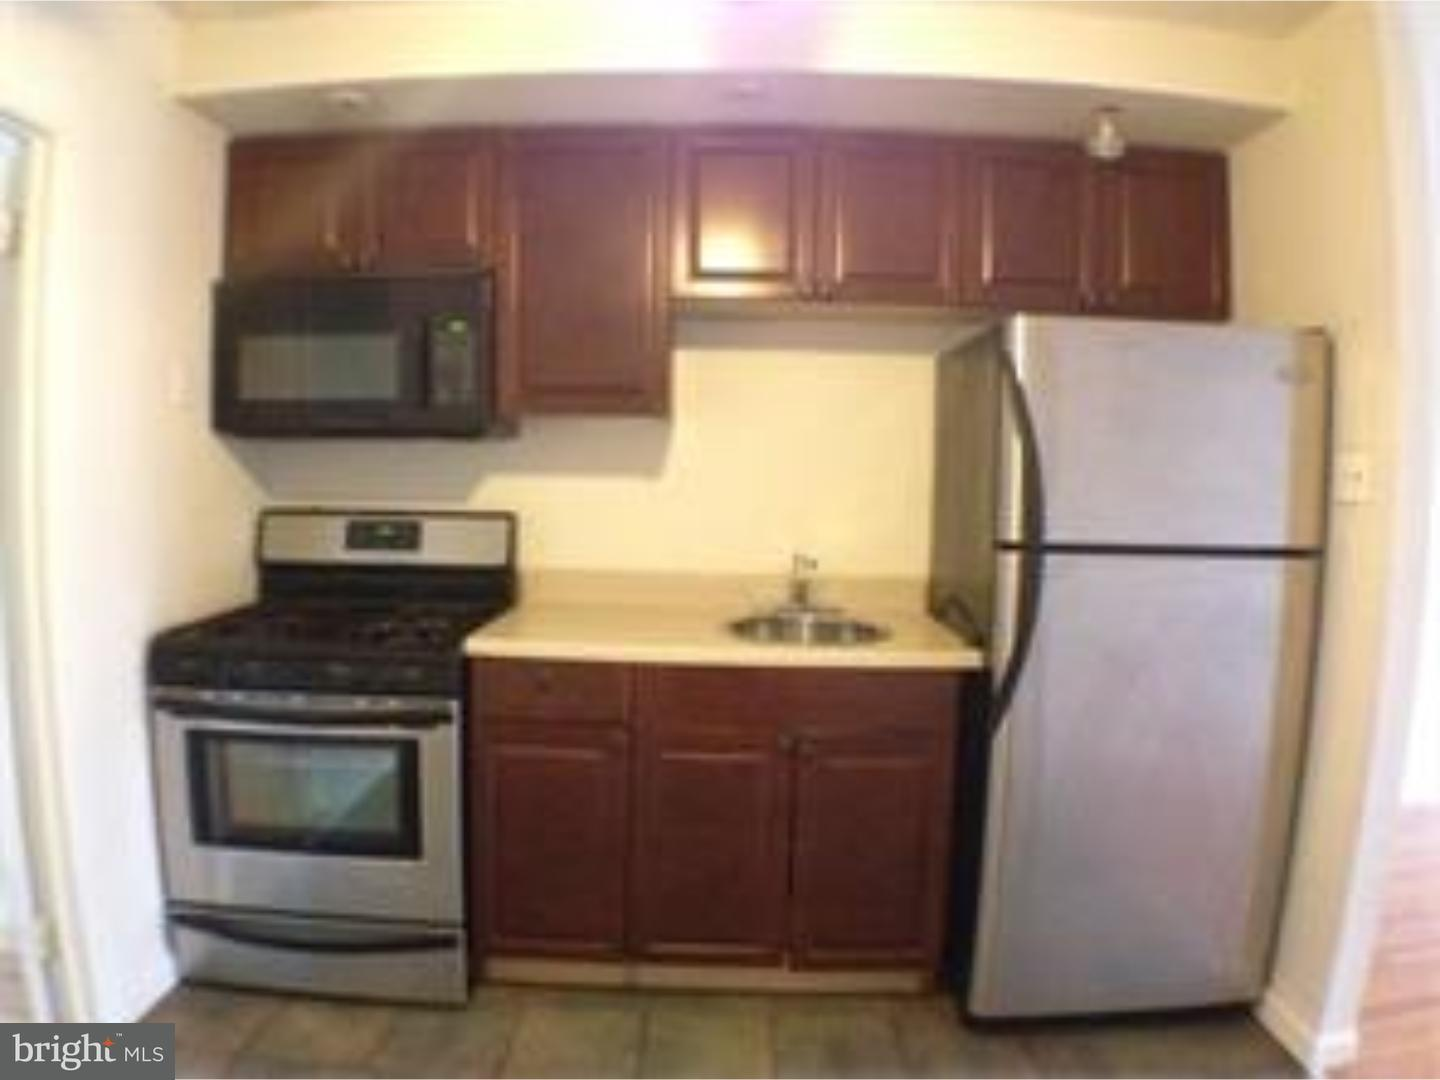 6008 keystone st philadelphia pa 19135 for rent trulia